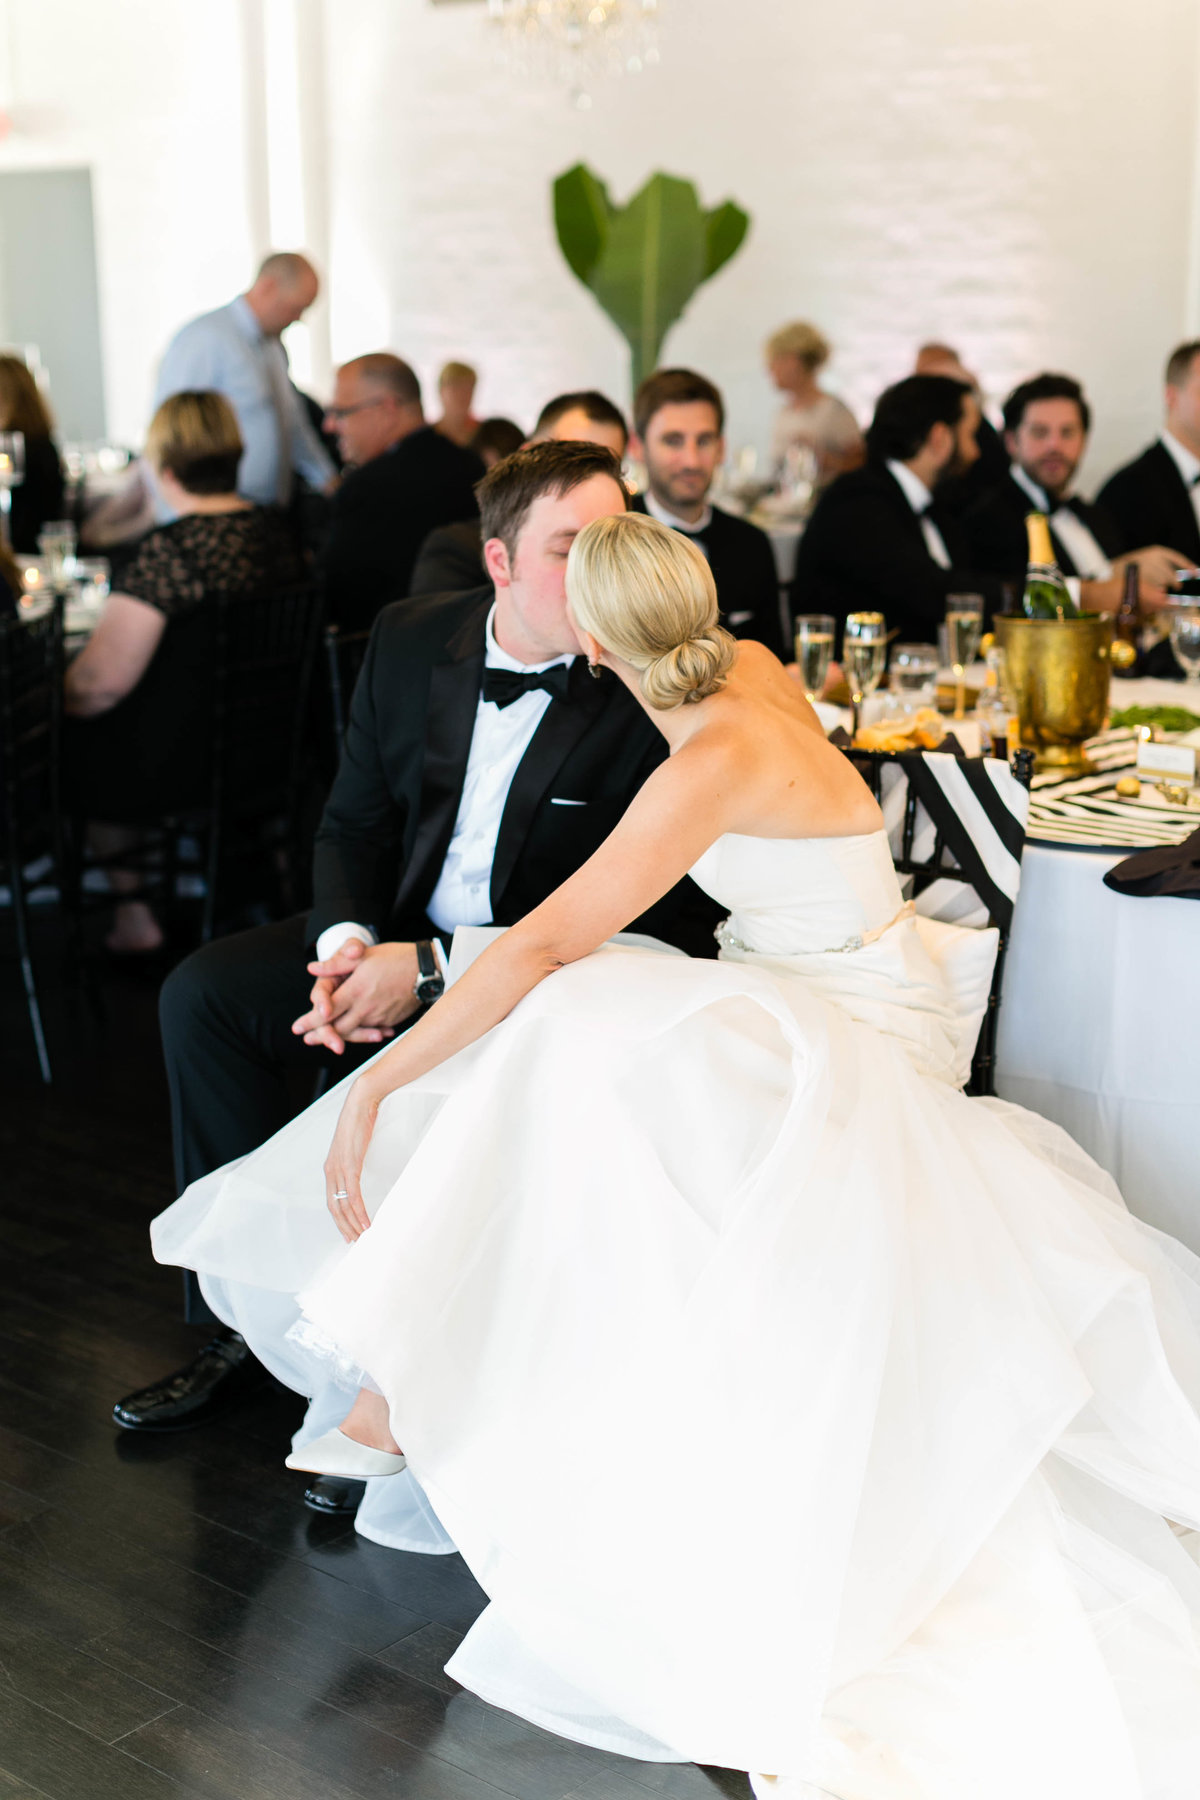 Natalie and Brian Wedding-Emilia Jane Photography-408